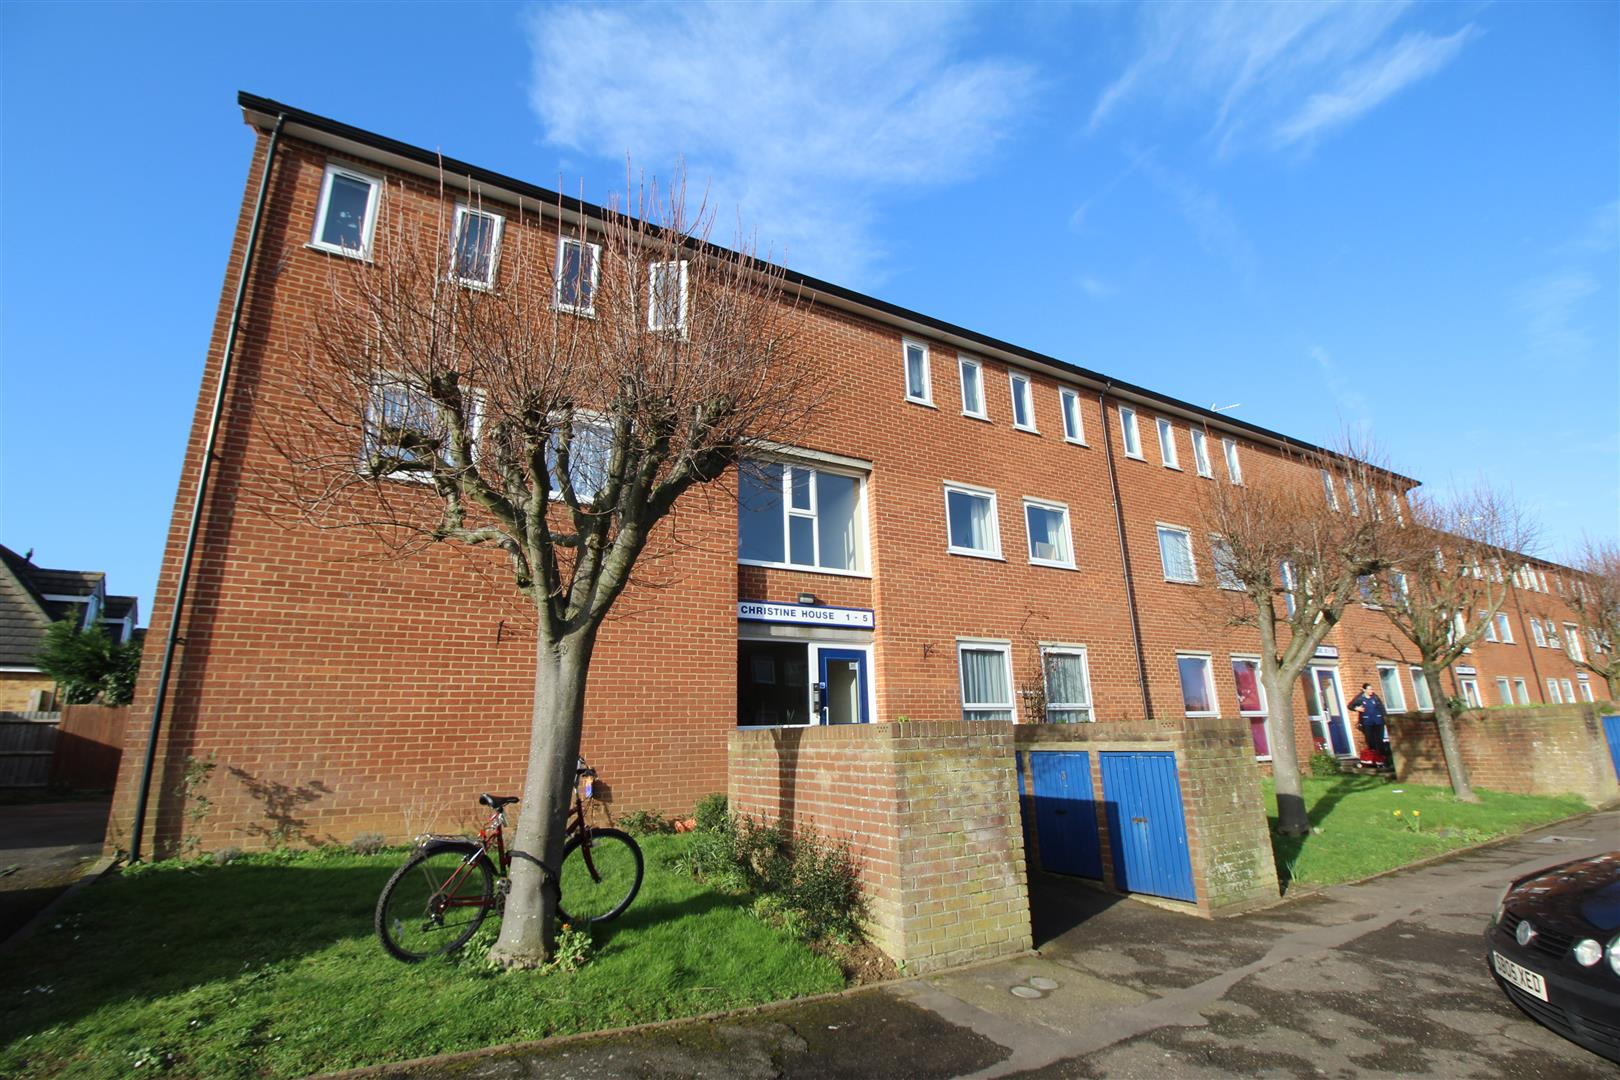 Two Bedroom second floor flat within walking distance of the Bletchley Town Centre and the Train Station to London Euston. The property has Upvc double glazing, gas heating to radiators and communal gardens with accommodation comprising: communal entranc